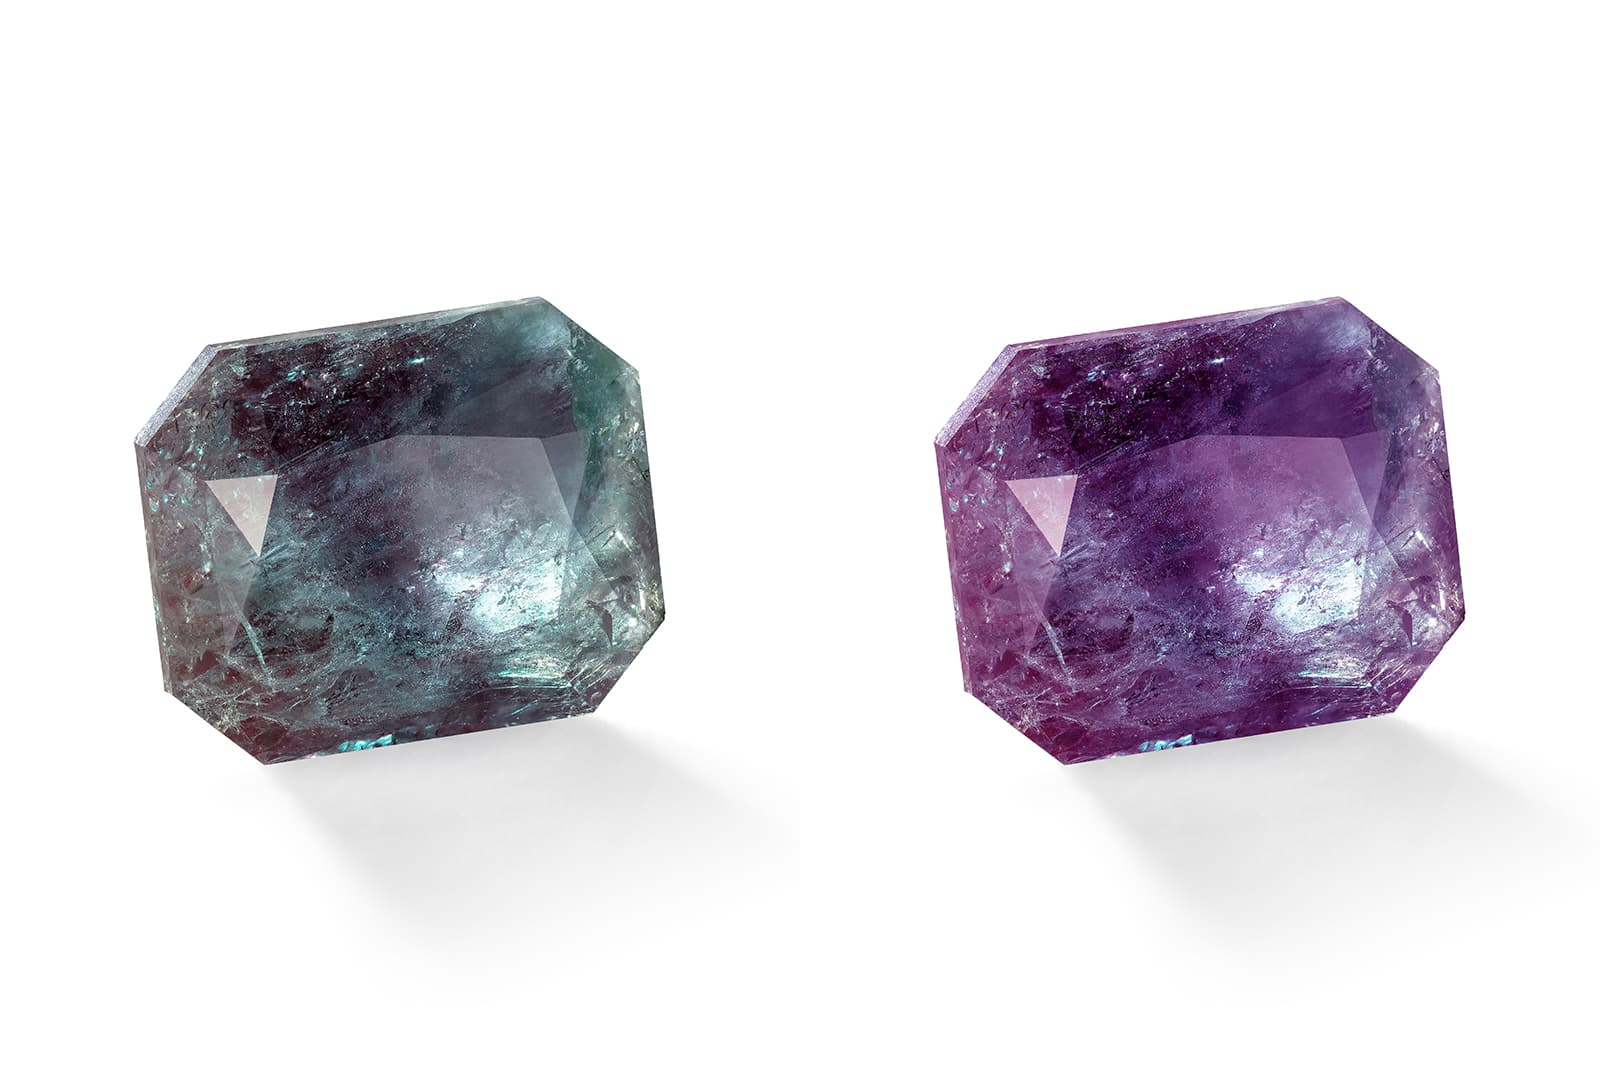 Alexandrite Meanings, Properties and Uses